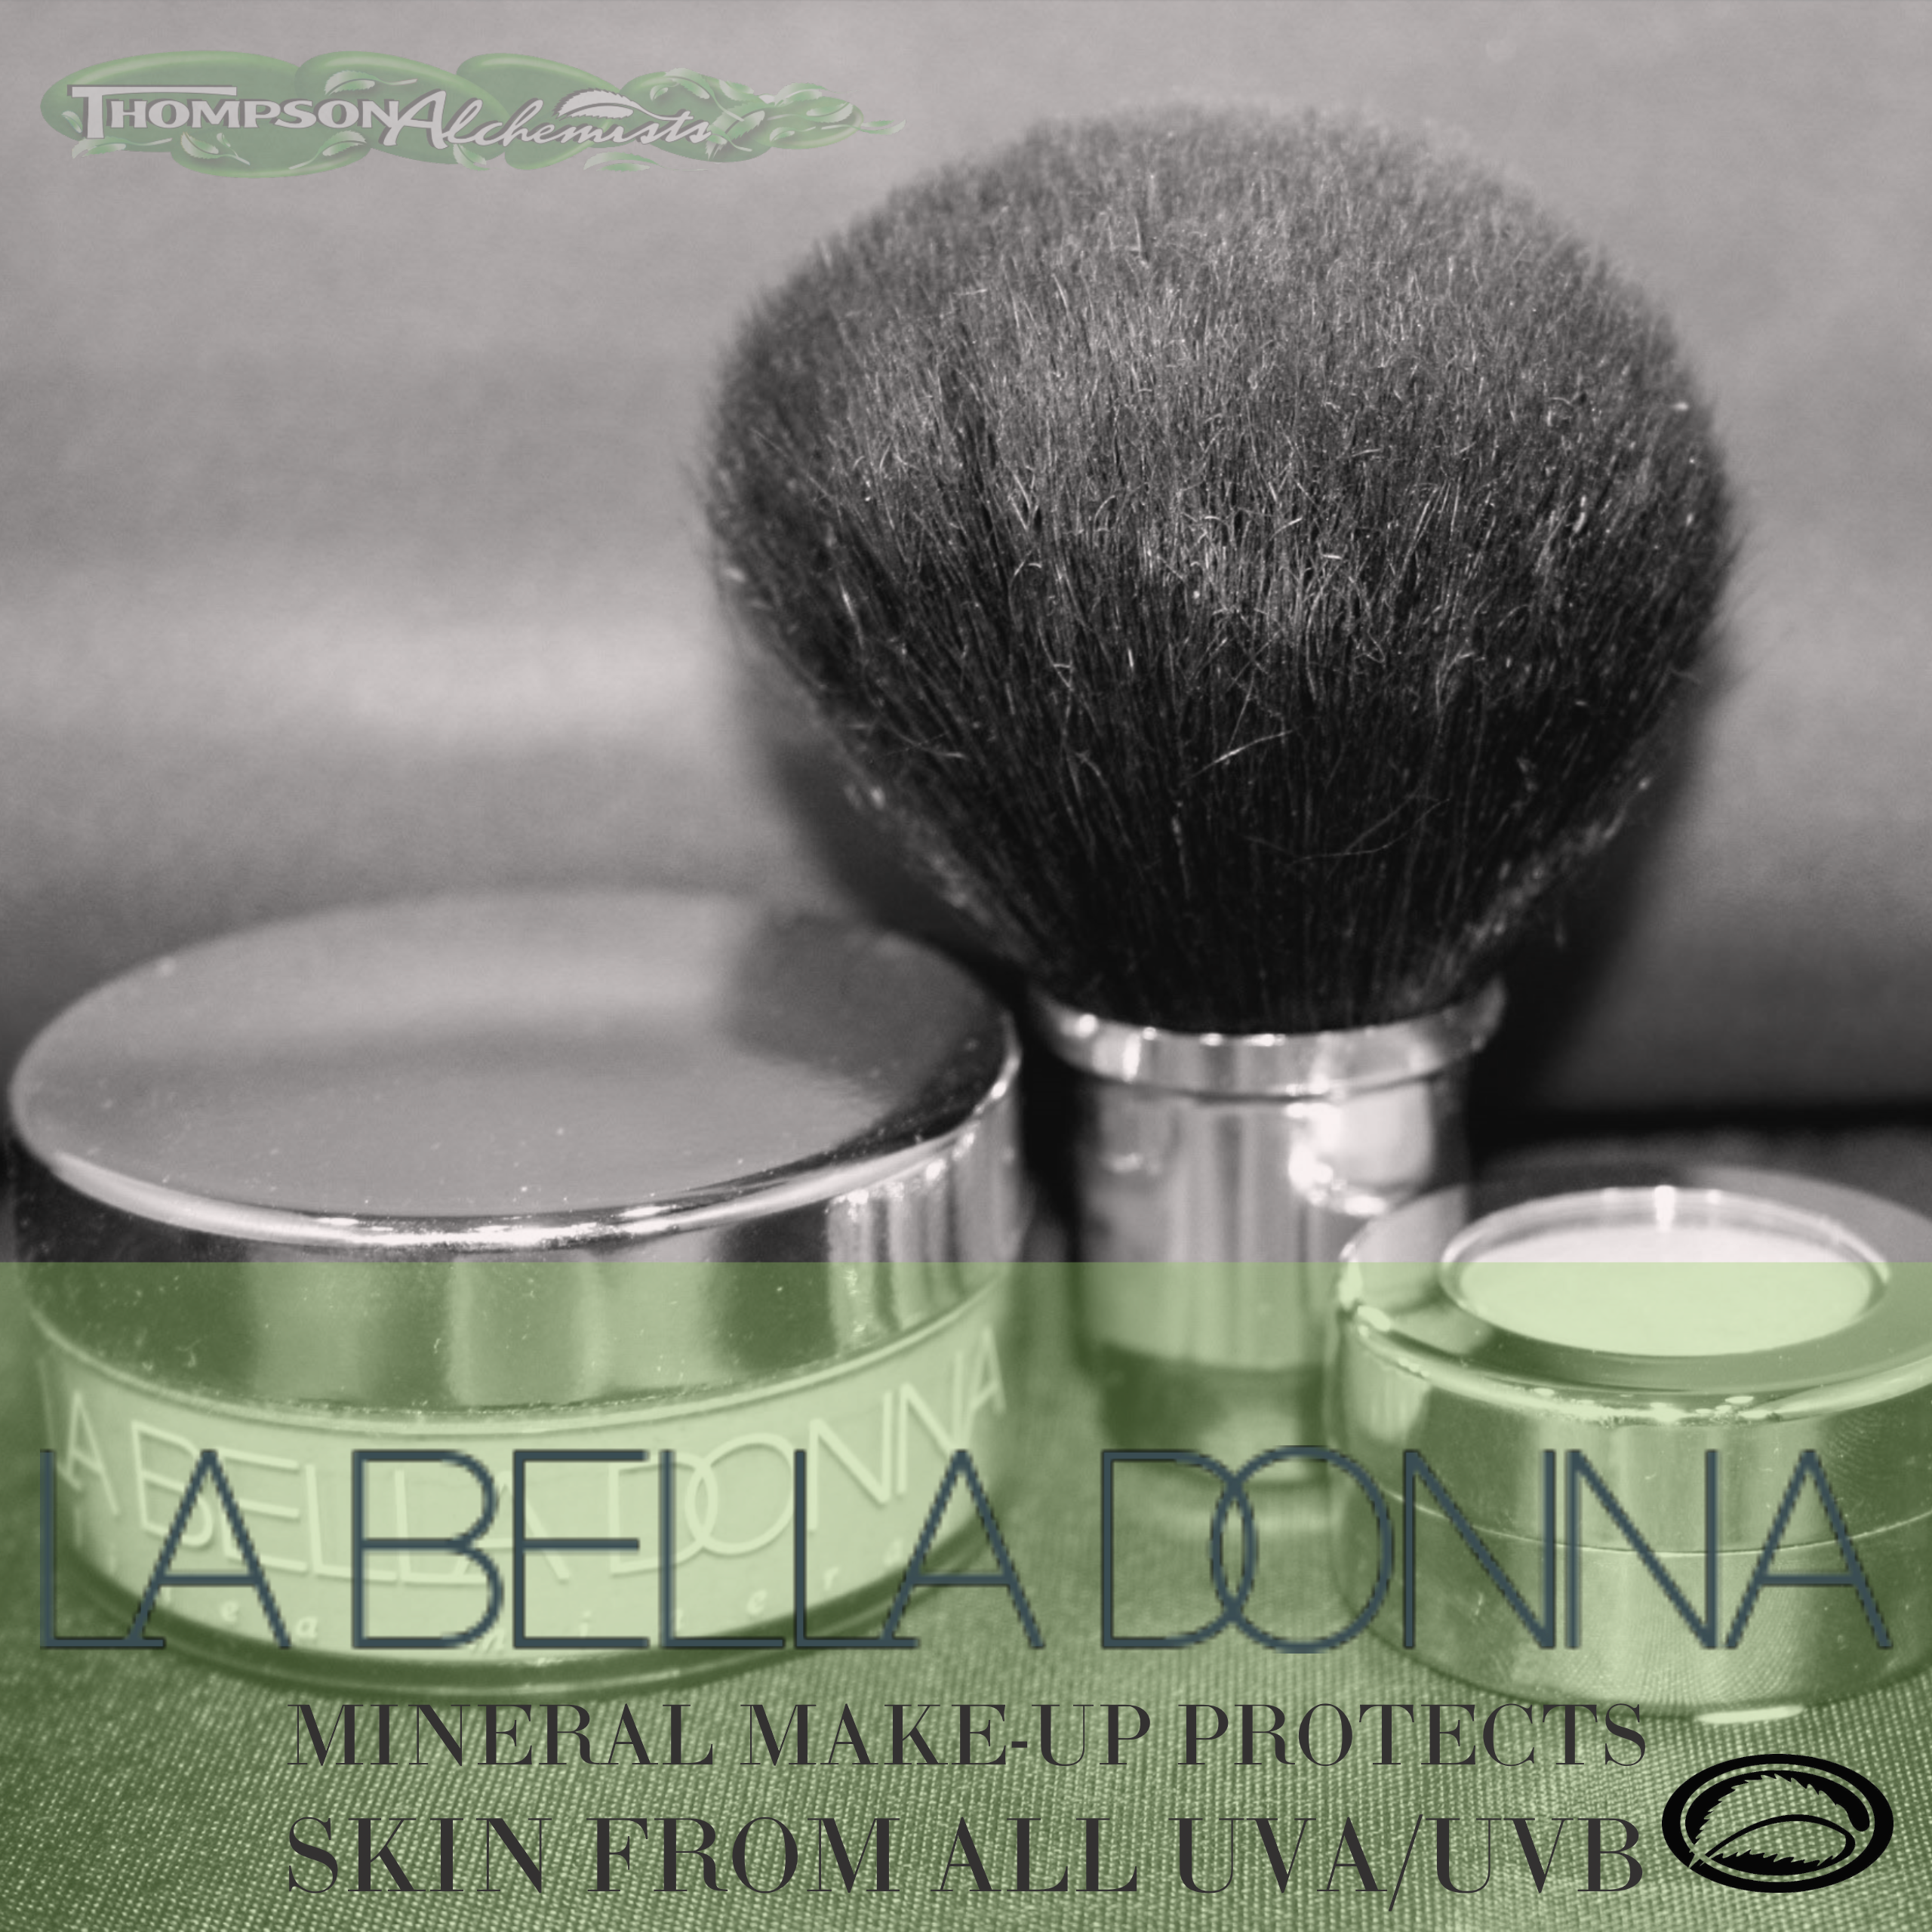 a picture of La Bella Donna Mineral Make-up products available at Thompson Alchemists